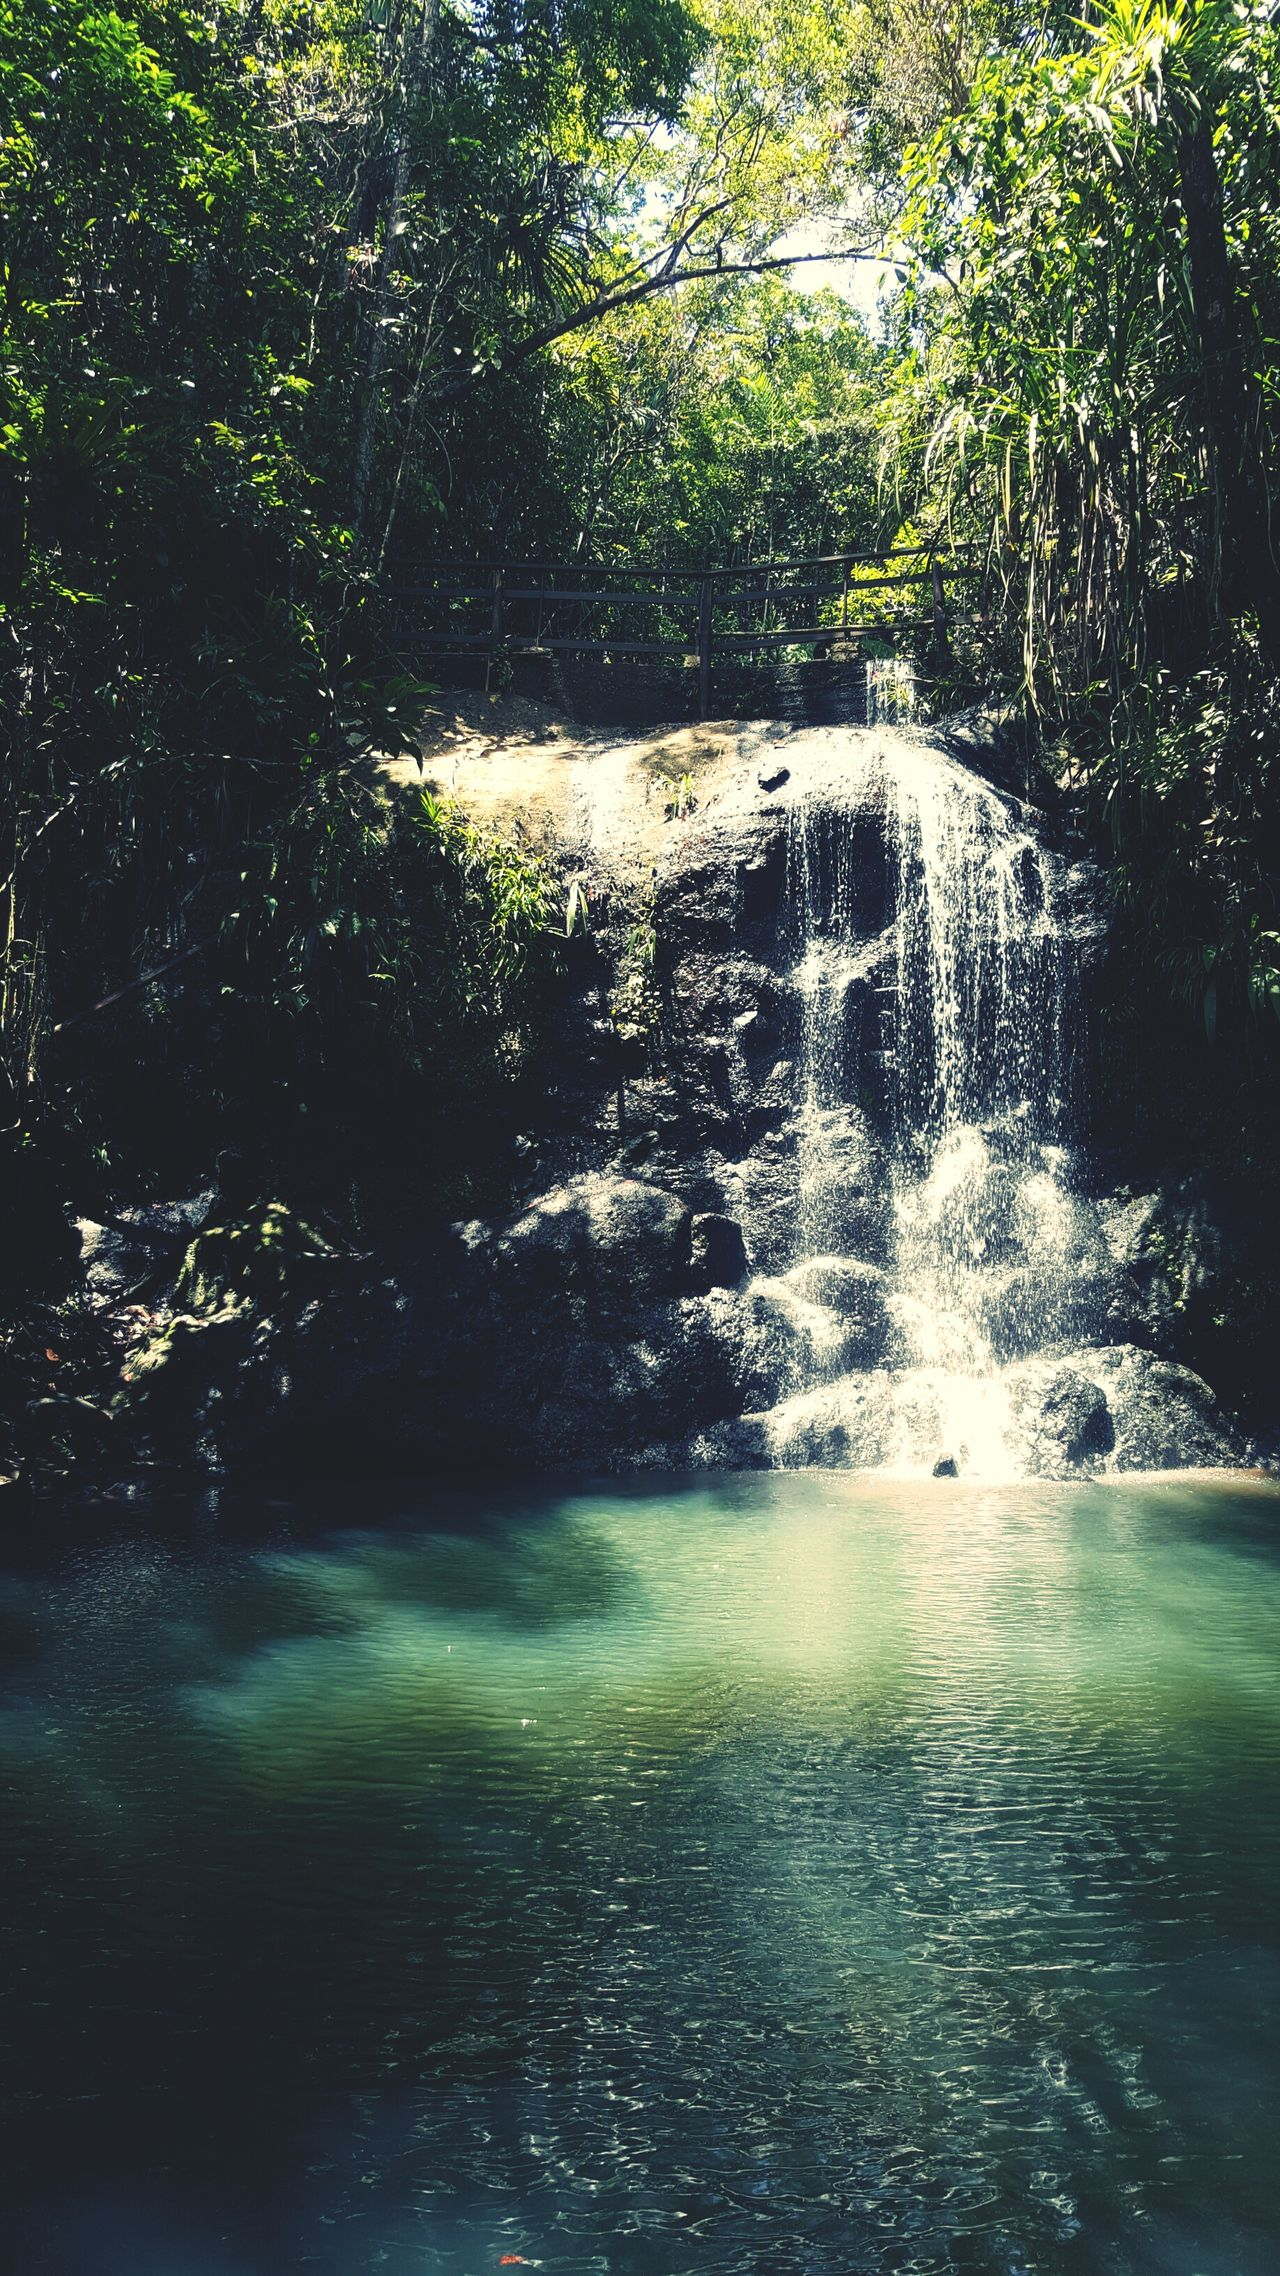 Waterfall #water #landscape #nature #beautiful Breathtaking View Worth The Hike Rainforest Walks Hidden Gems  SUVA FIJI ISLANDS Relaxing Moments Cool Water